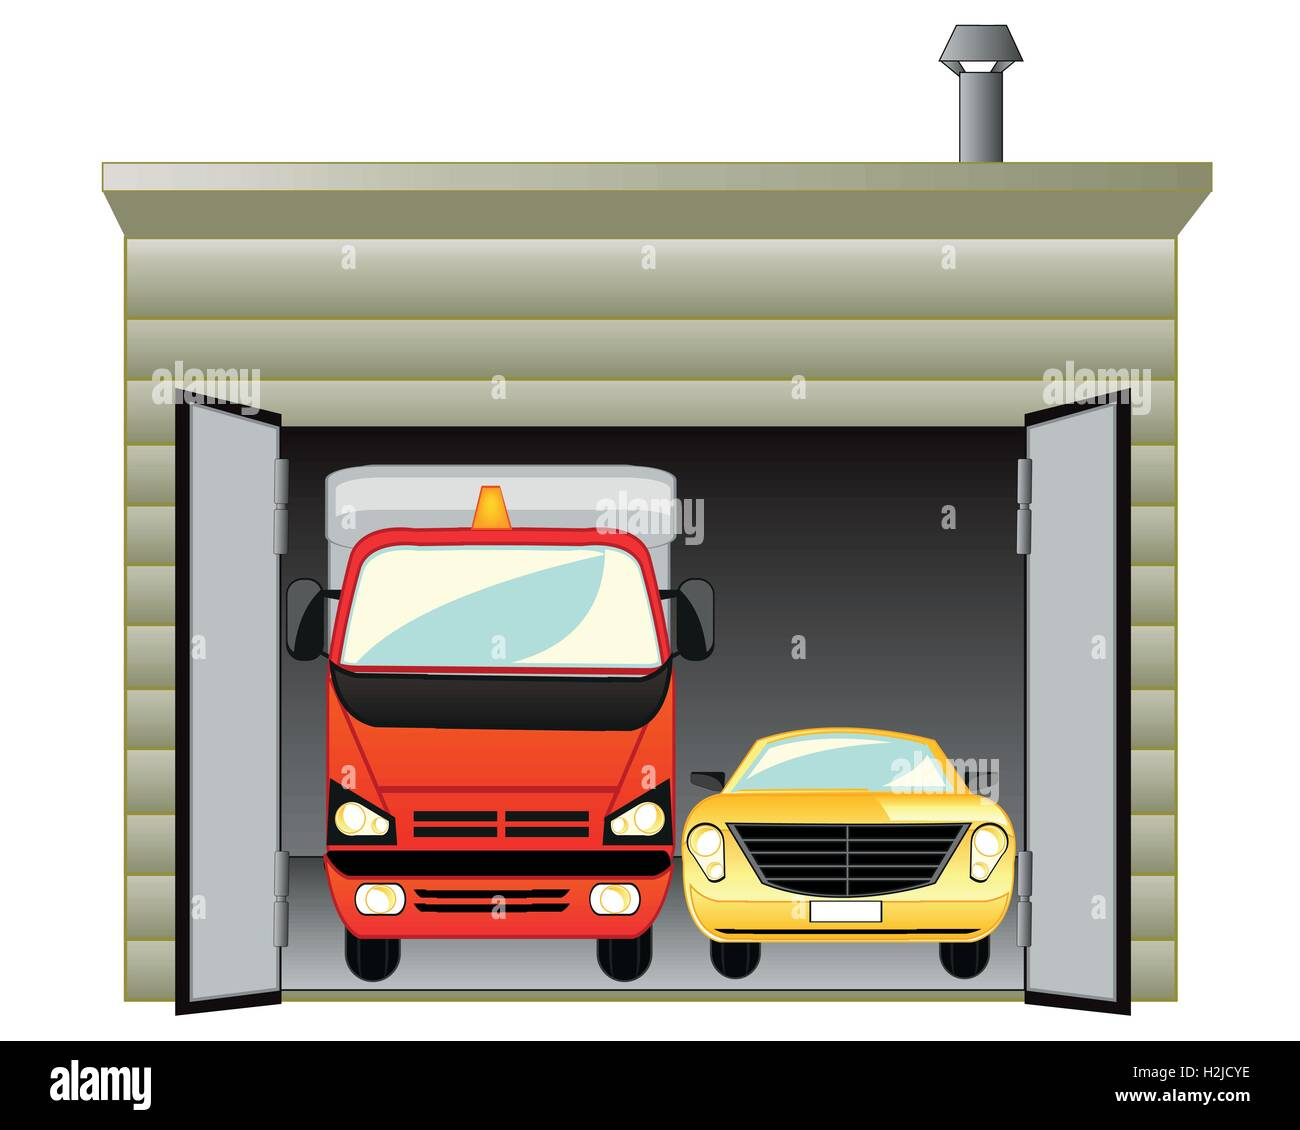 Garage with car - Stock Vector